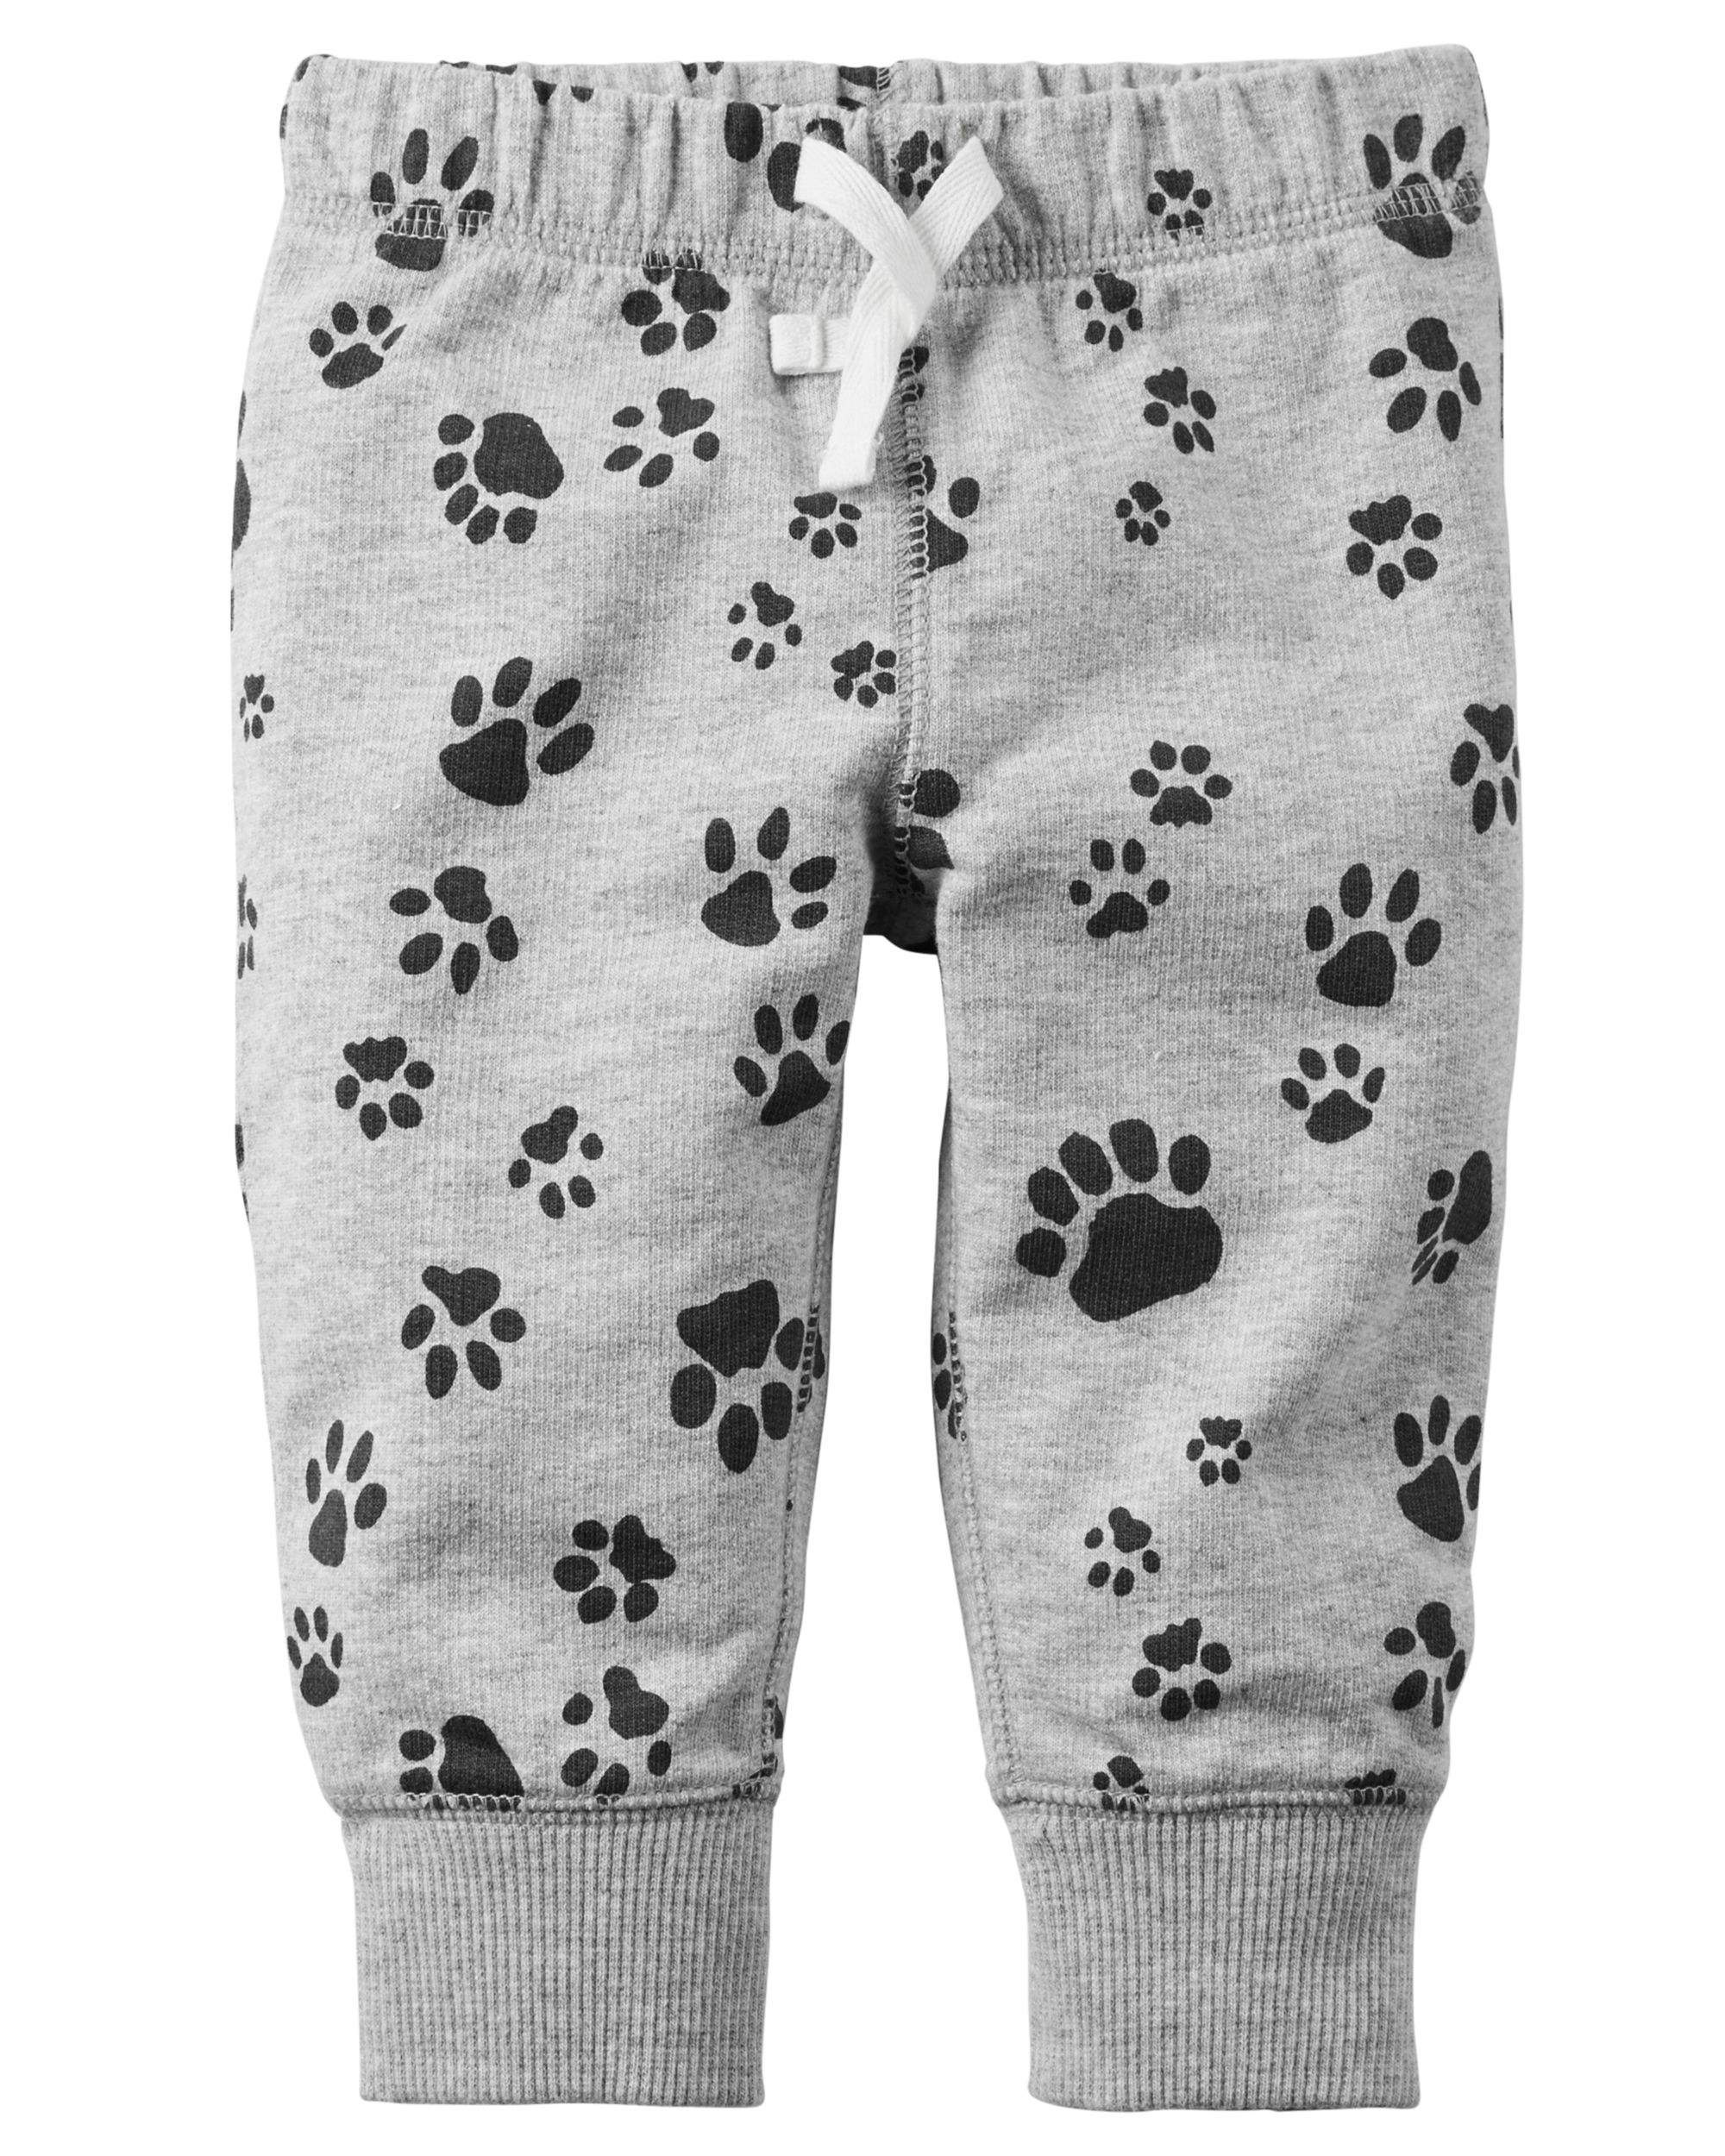 Pull-On French Terry Pants (Pawprint) - $7.00